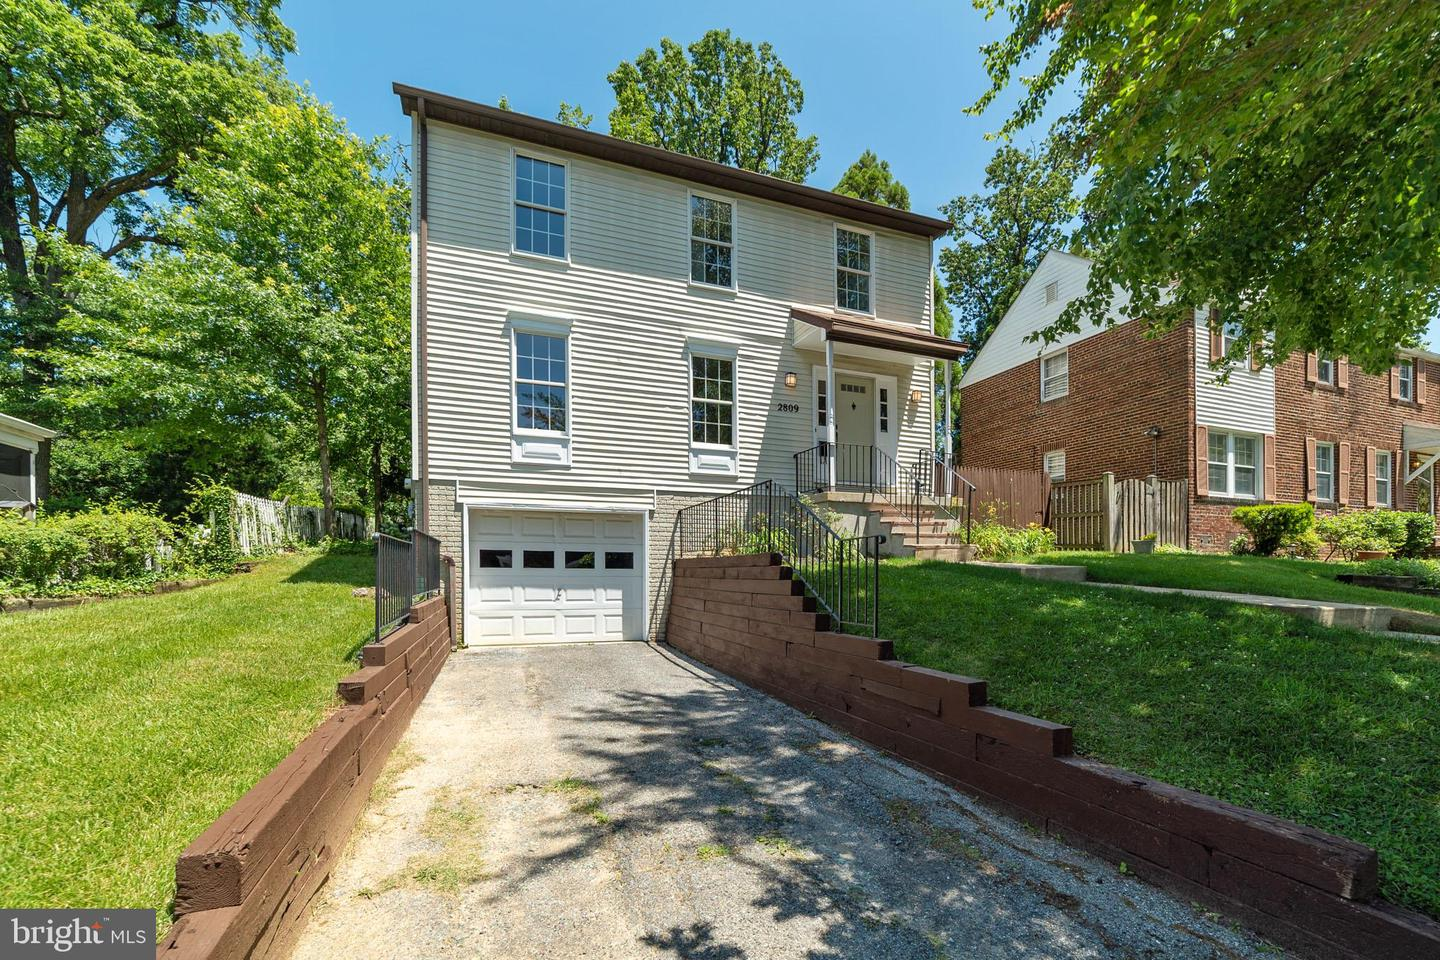 2809 LAUREL AVENUE, CHEVERLY, Maryland